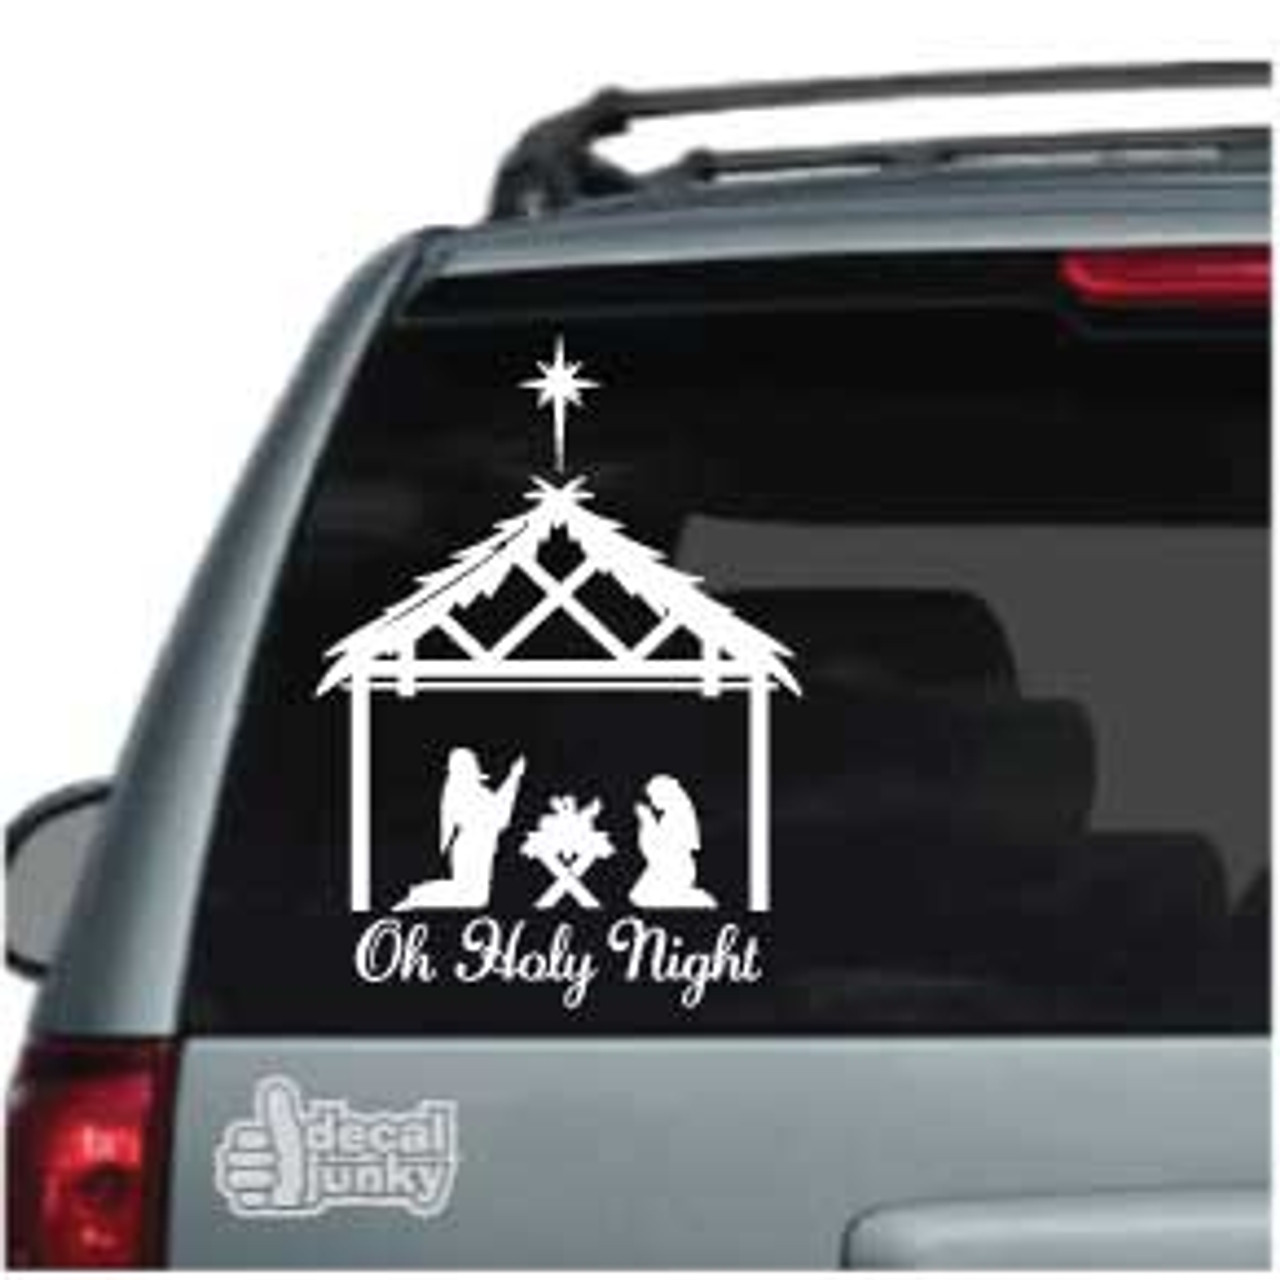 Oh Holy Night Nativity Car Window Decal